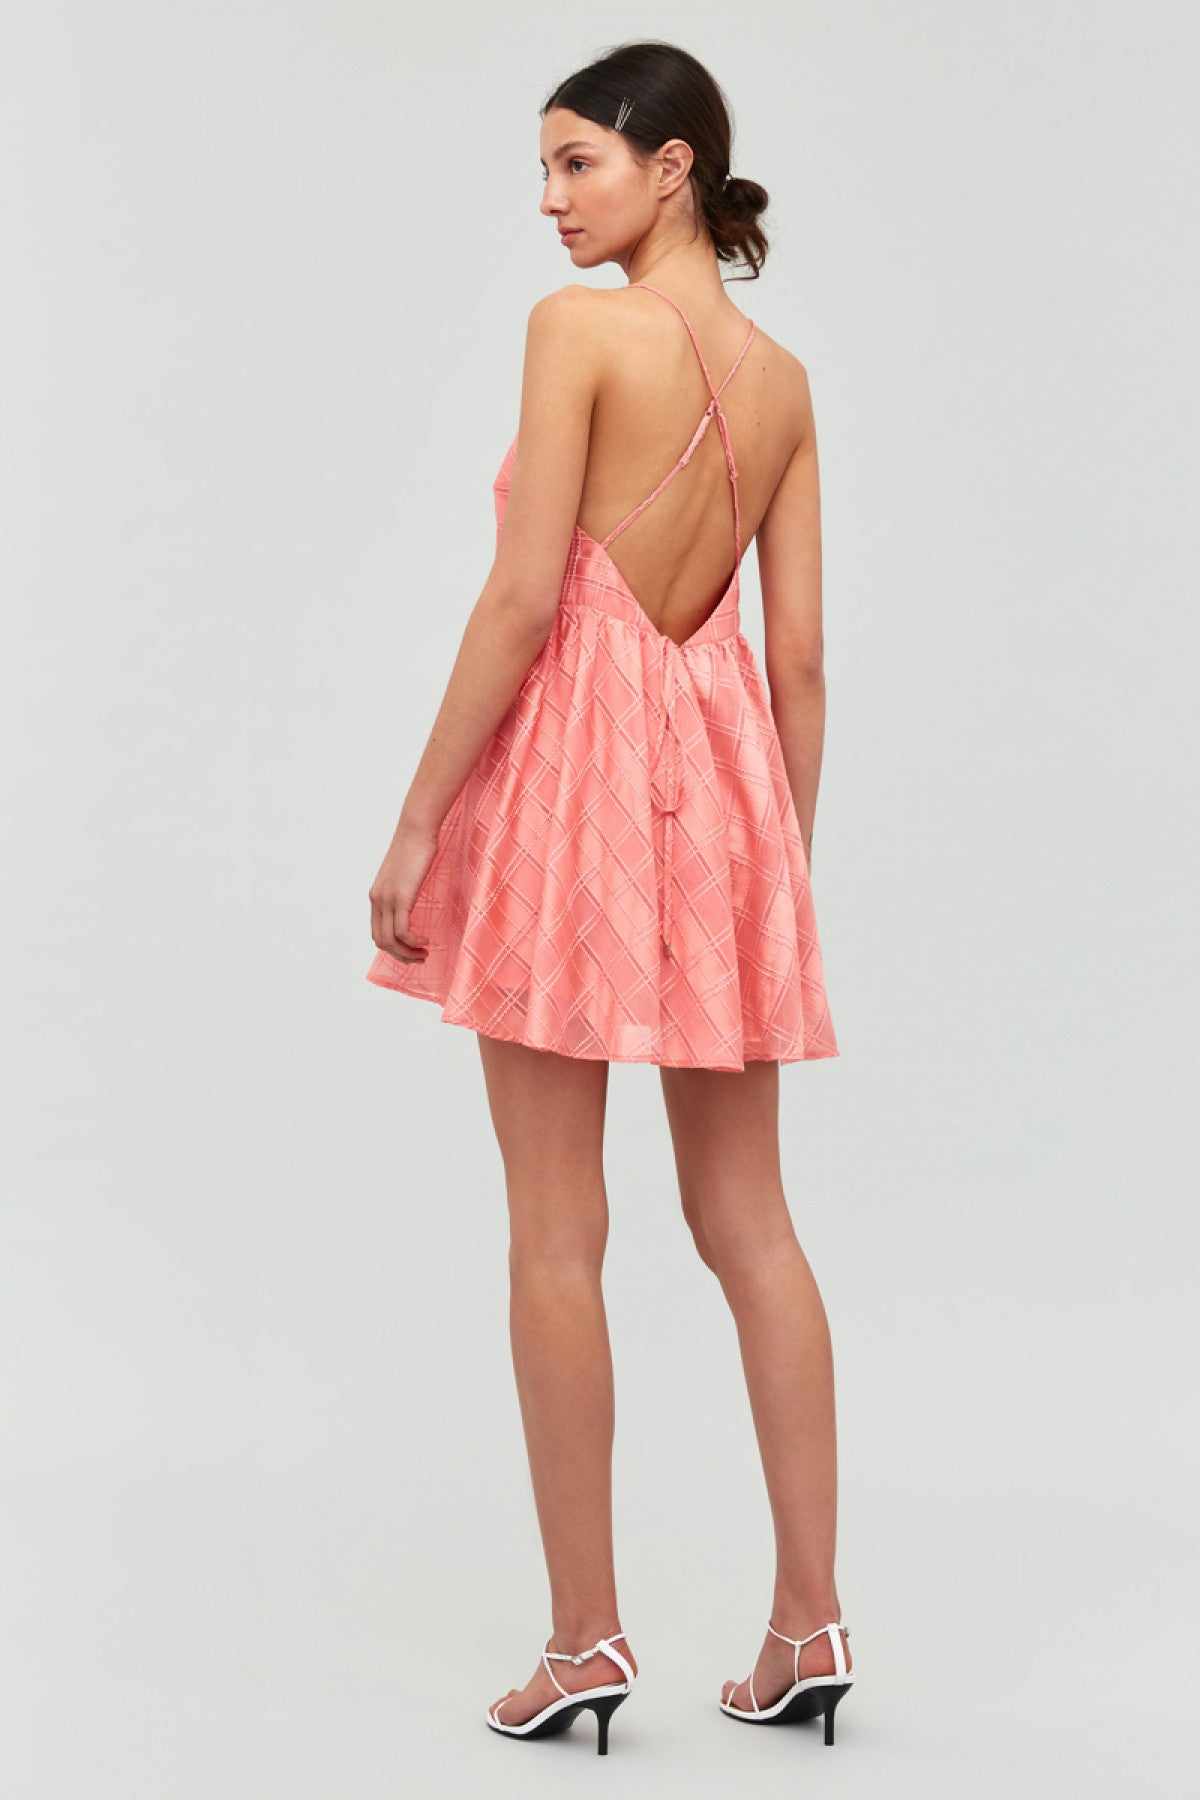 SAME THINGS MINI DRESS coral check